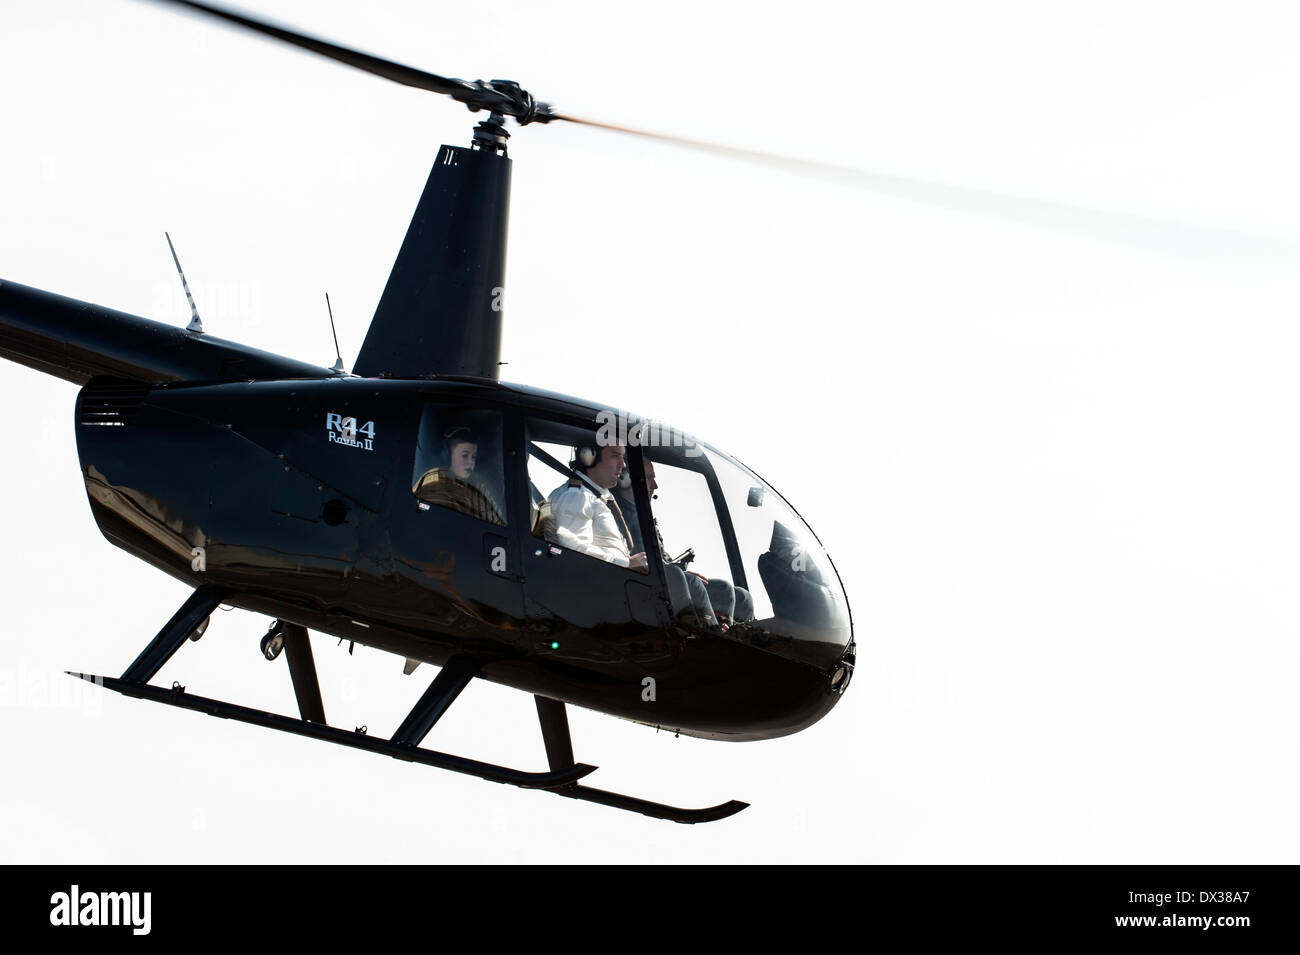 Robinson R44 Raven II, four-seat single-engined helicopter with semi-rigid two-bladed main rotor and skid landing gear in flight - Stock Image